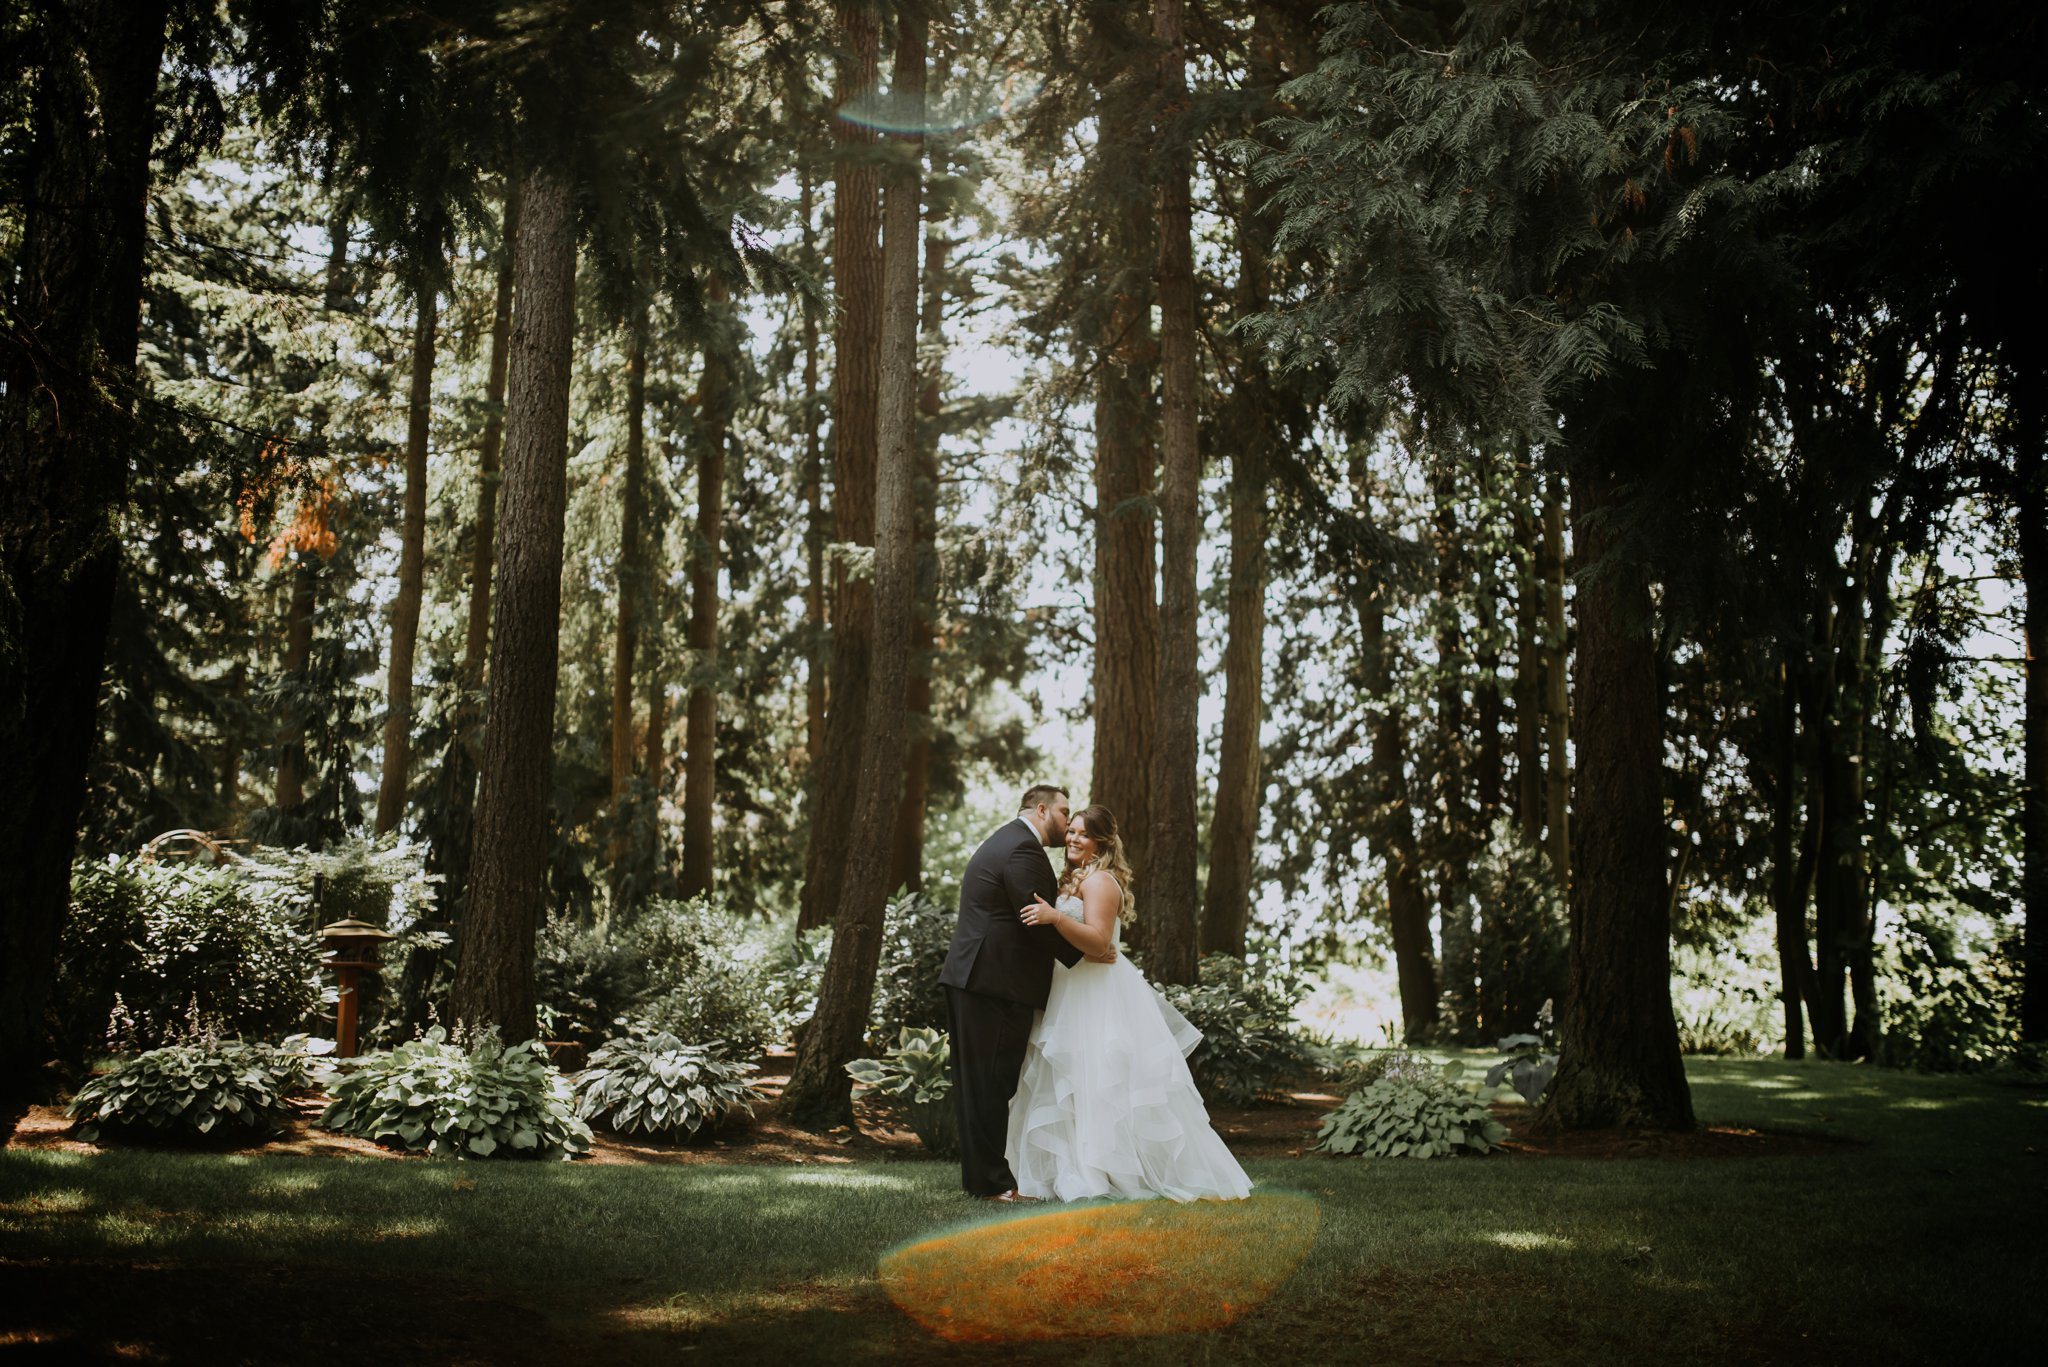 evergreen-gardens-bellingham-wedding-seattle-photographer-caitlyn-nikula-37.jpg